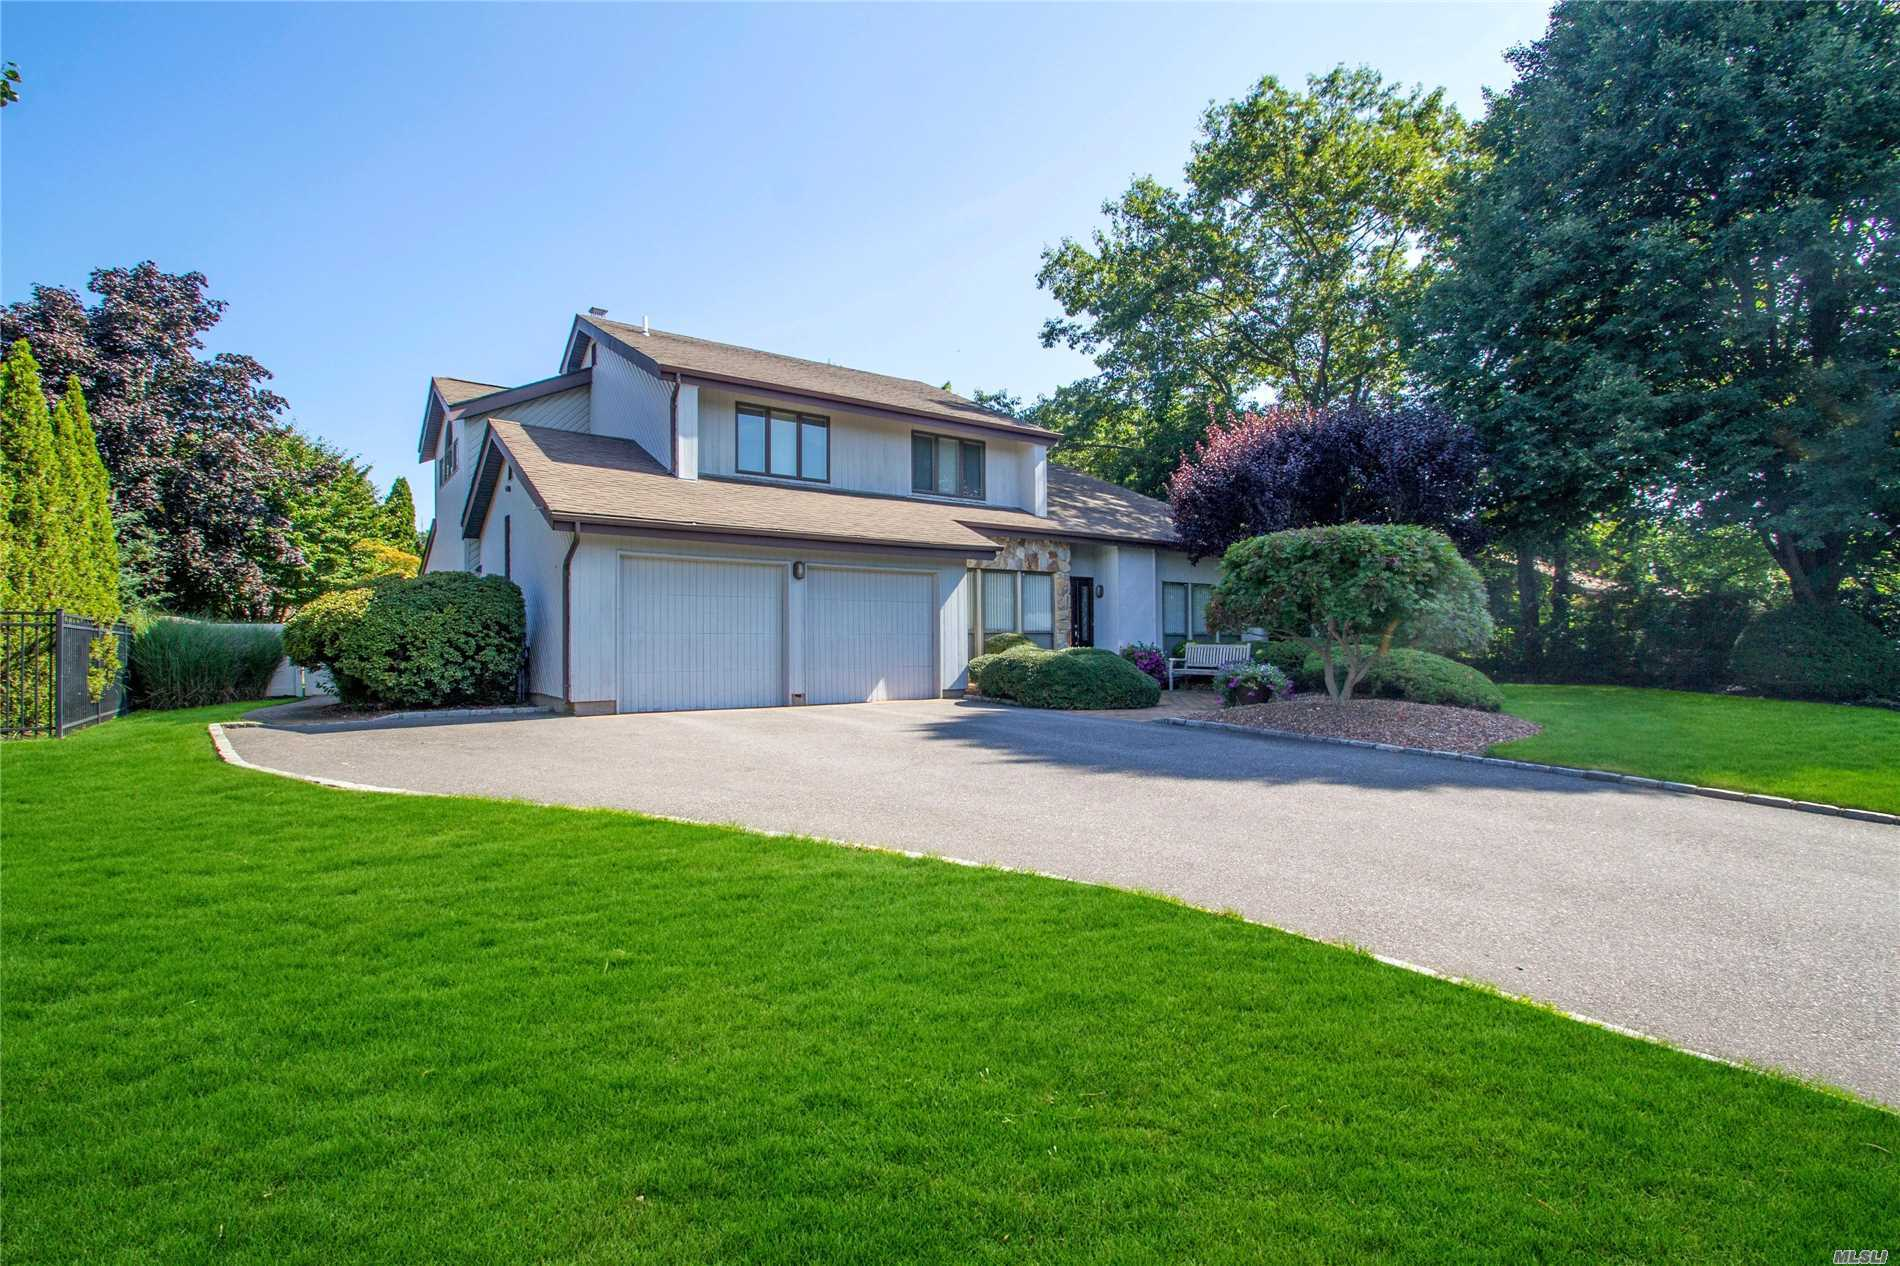 Orig. Owner/Expanded Brighton/Easy 6th Br/Approx. 3200 Sf/Plnty Clsts-With Organizers/Yng Granite Ci Custom Kitchen-Cherry Cab/Wood Fp-Easy Gas/Many Andersens/2 Smart Thermo/200 Amp/Gar Ee/5 Car Exp. Drive/Fenced Yd/Many Hi Hats/2 Attics-Gar Stairs-Pull Down/Kit+Fr Crown/Prof. Lndscp/Country Club Yard/Cent St Sec+Fire/ Pool-Brk Patio-Polaris-Vinyl-Steel-Loop Loc/Compos Dec/Surb. Pest K/2 Sheds//Fixtures Stay/Much More!